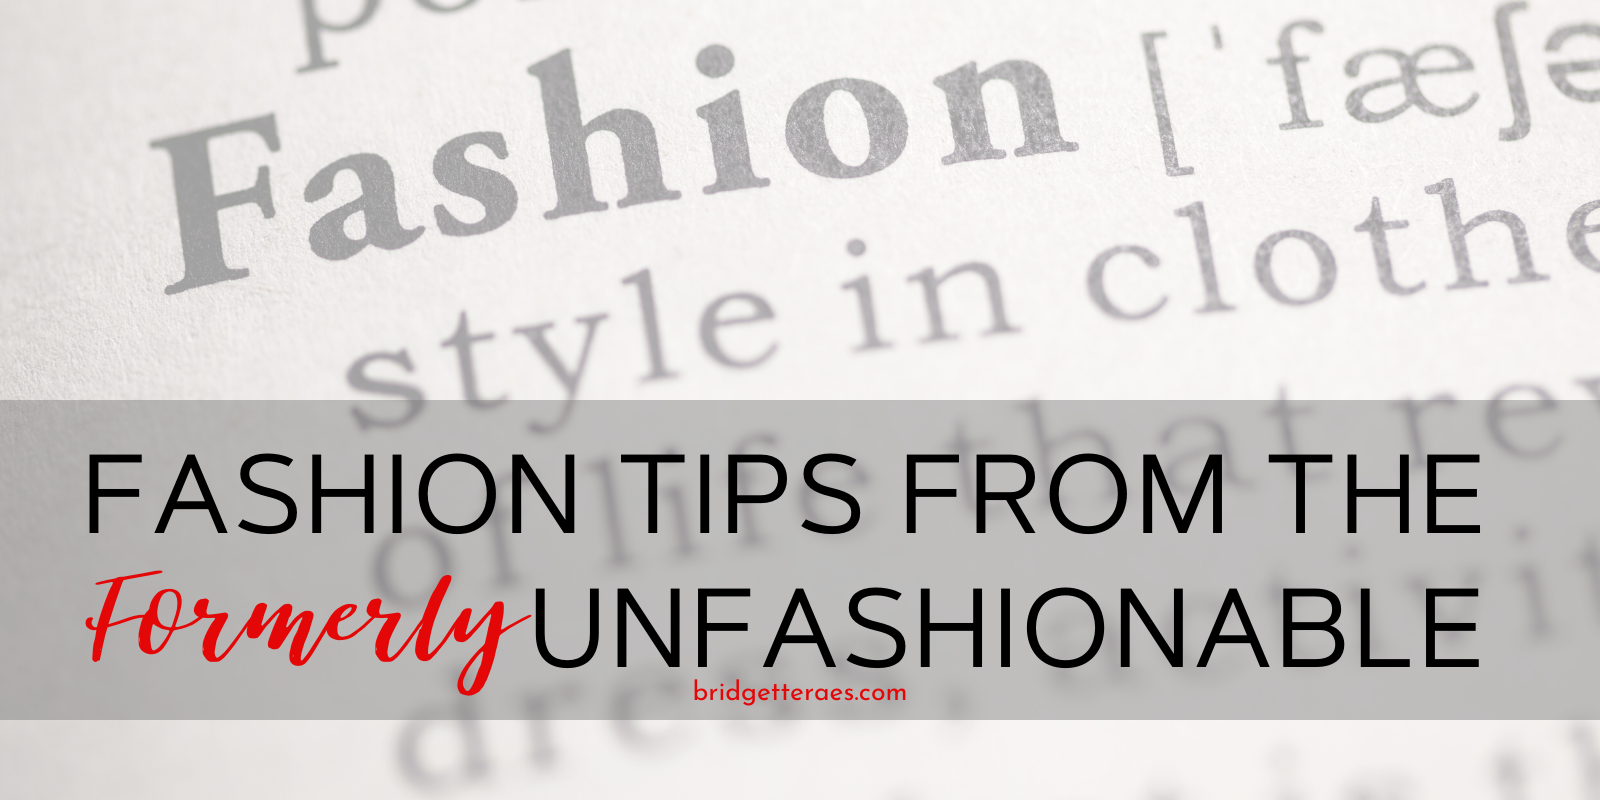 Fashion Tips from The Formerly Unfashionable